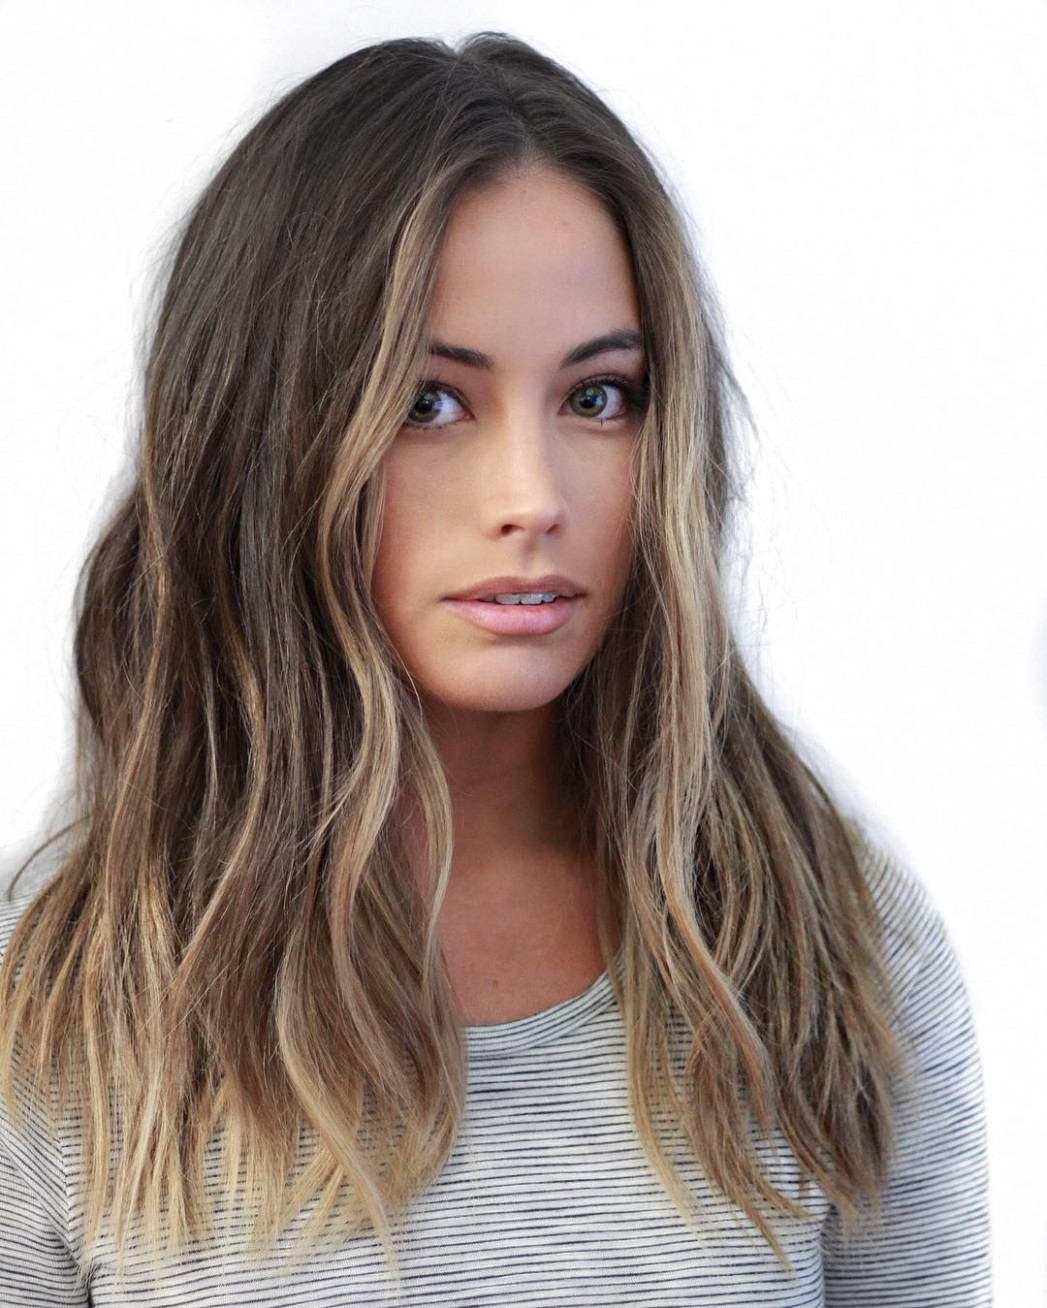 Cool 10 stylish hairstyle ideas for mid length hair and mid length